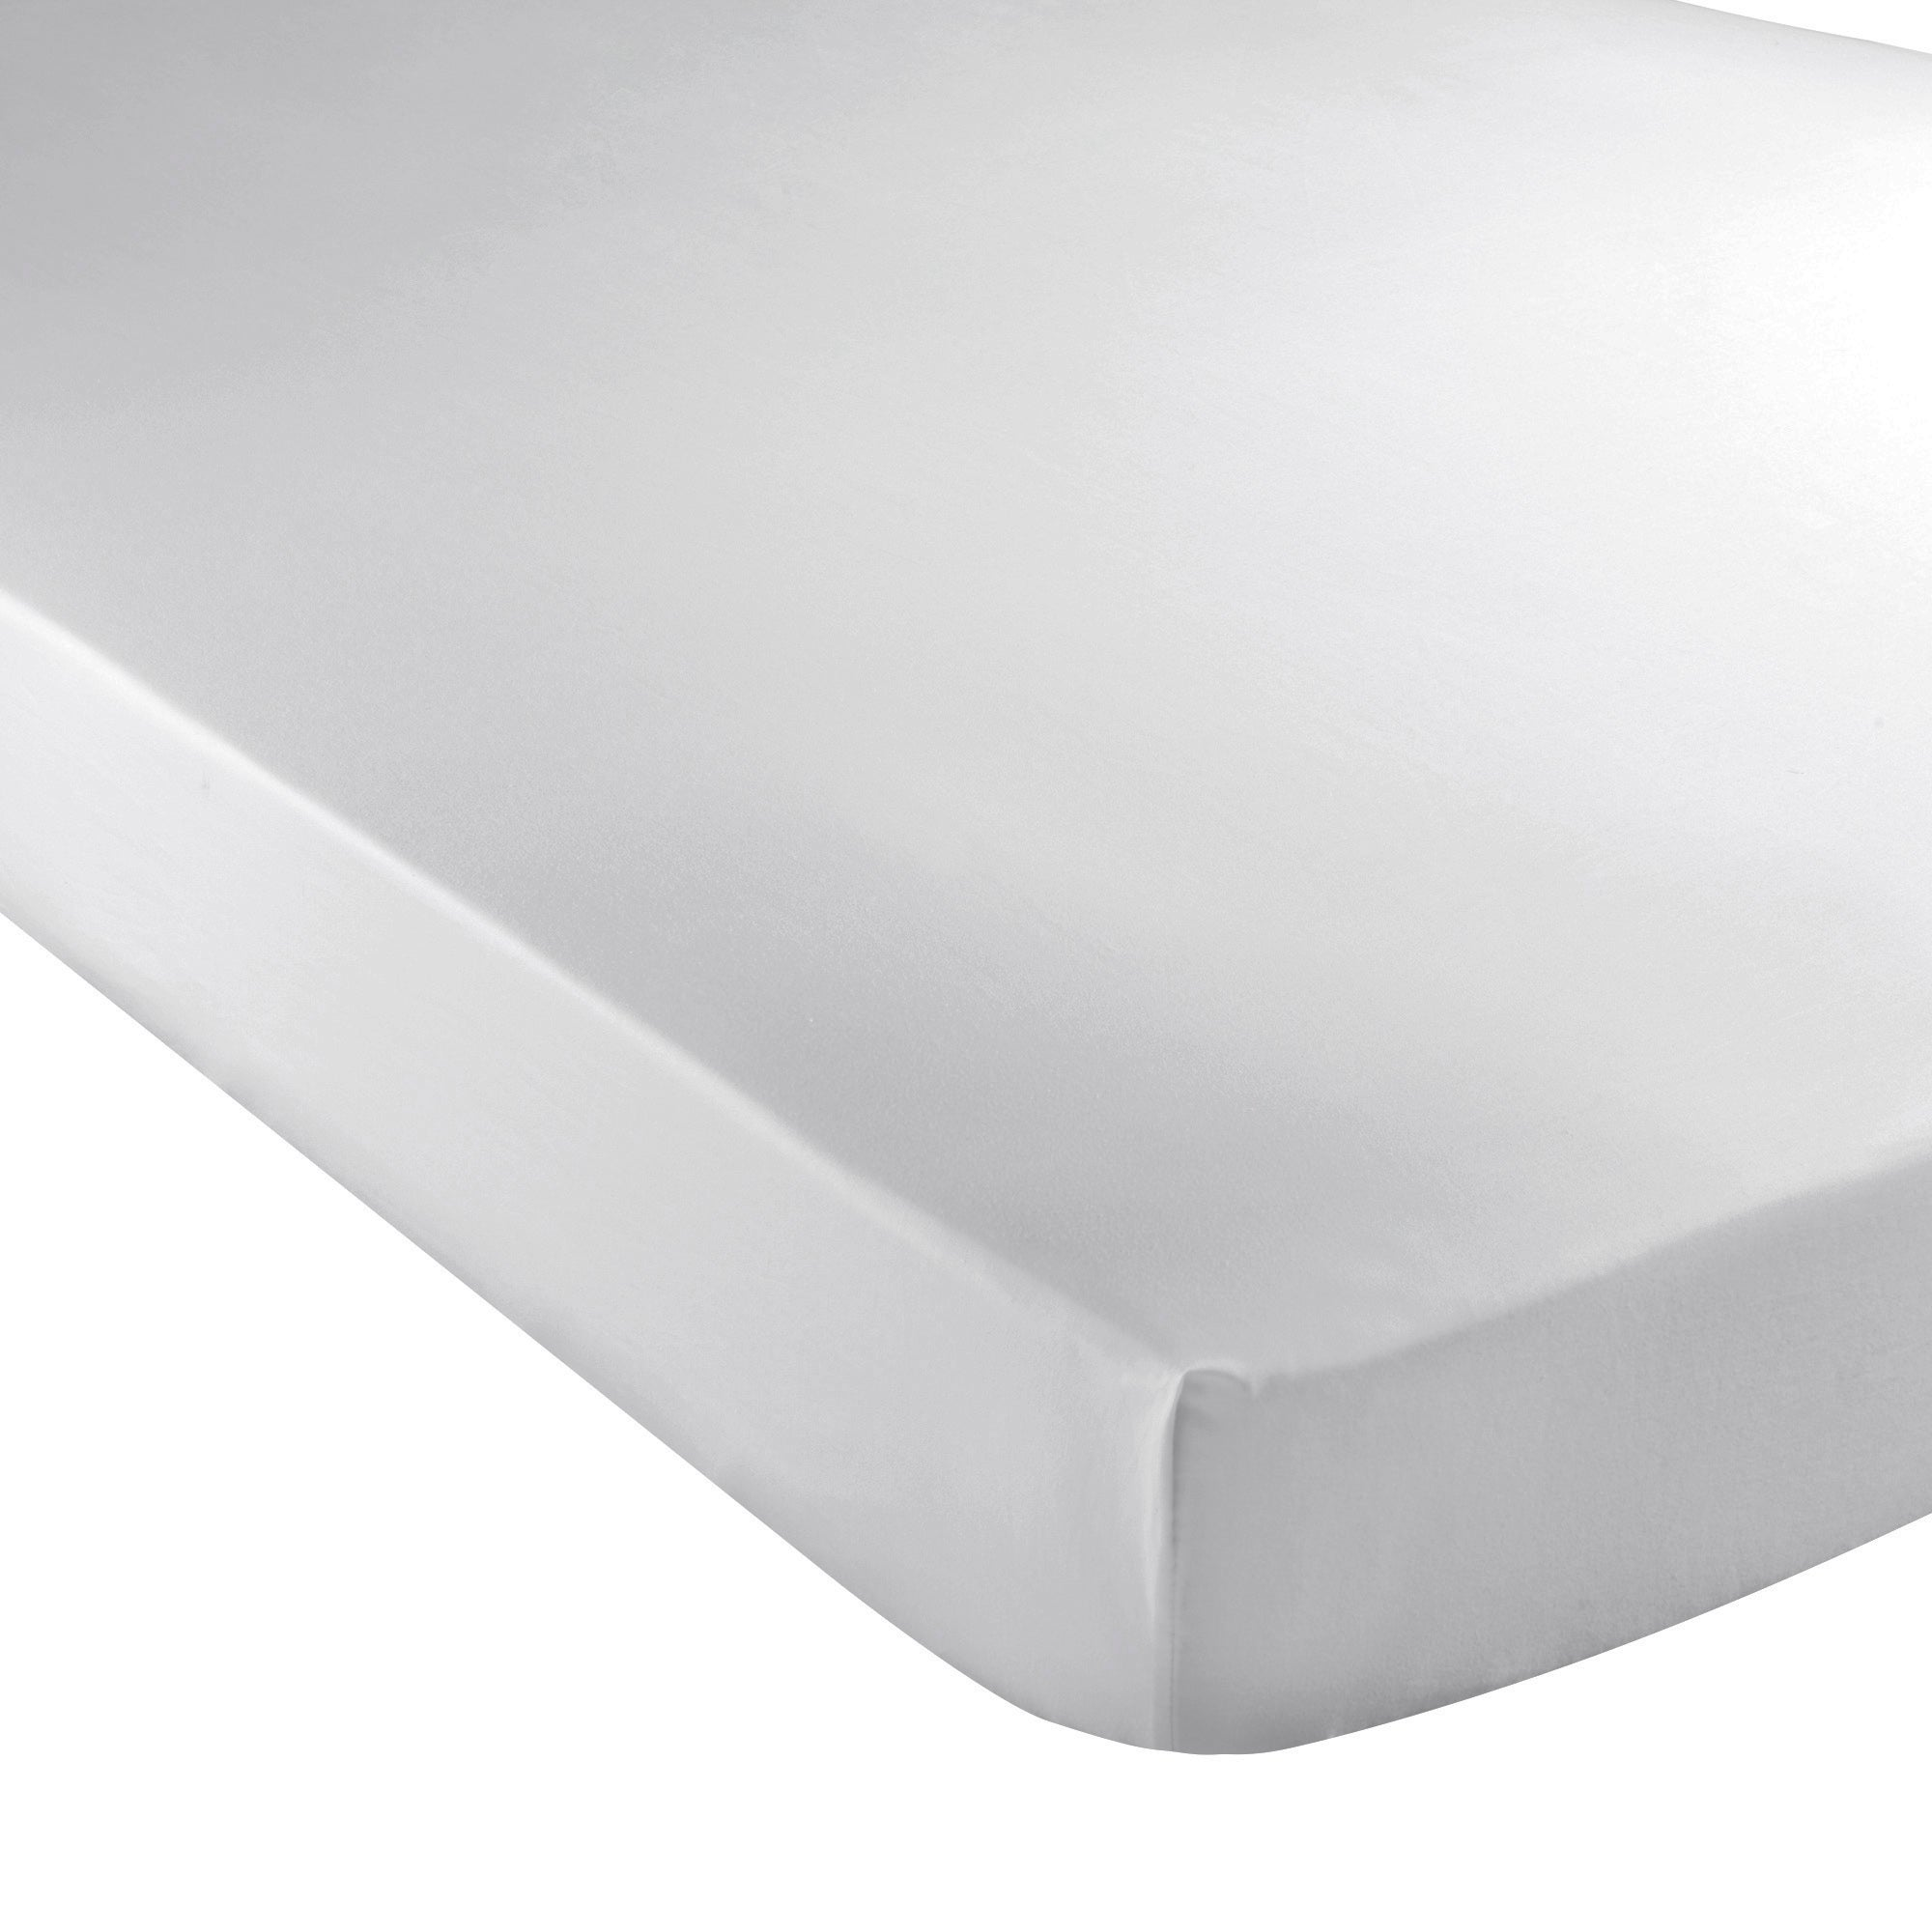 Image of Hotel 300 Thread Count 35cm Silver Fitted Sheet Silver (Grey)